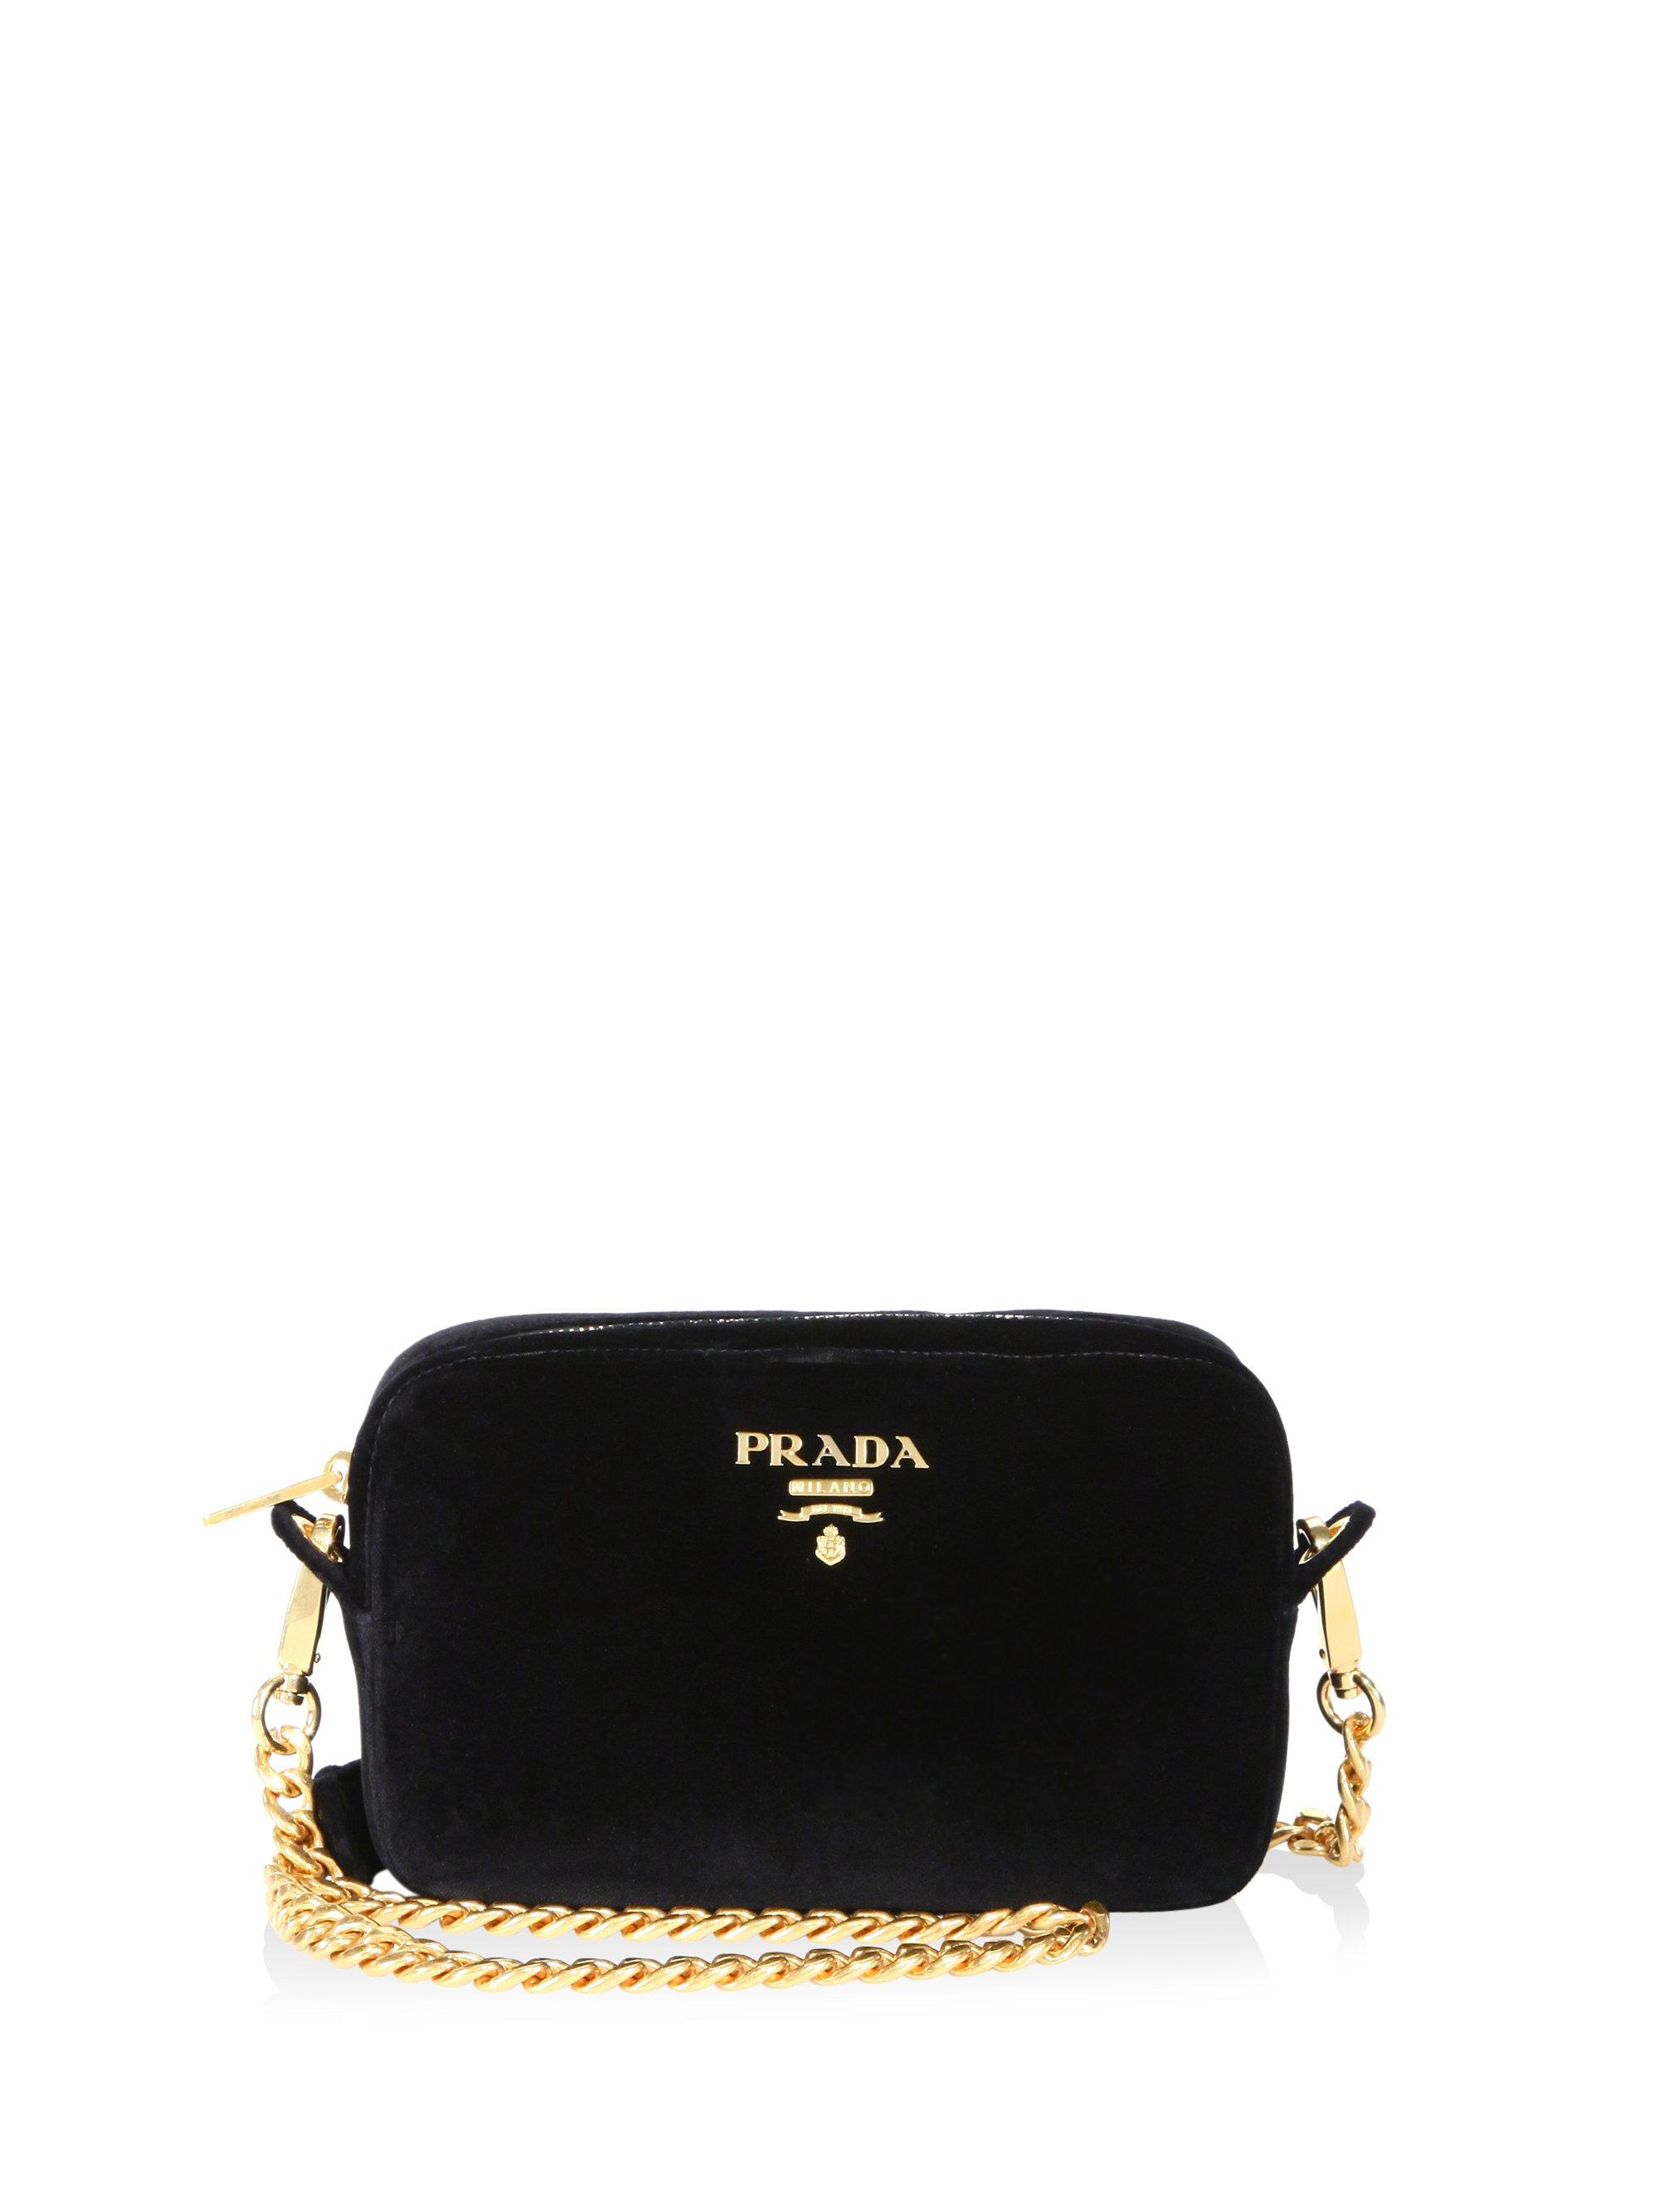 bcc26bbffe47 Lyst - Prada Bandoliera Velvet Chain Camera Bag in Black